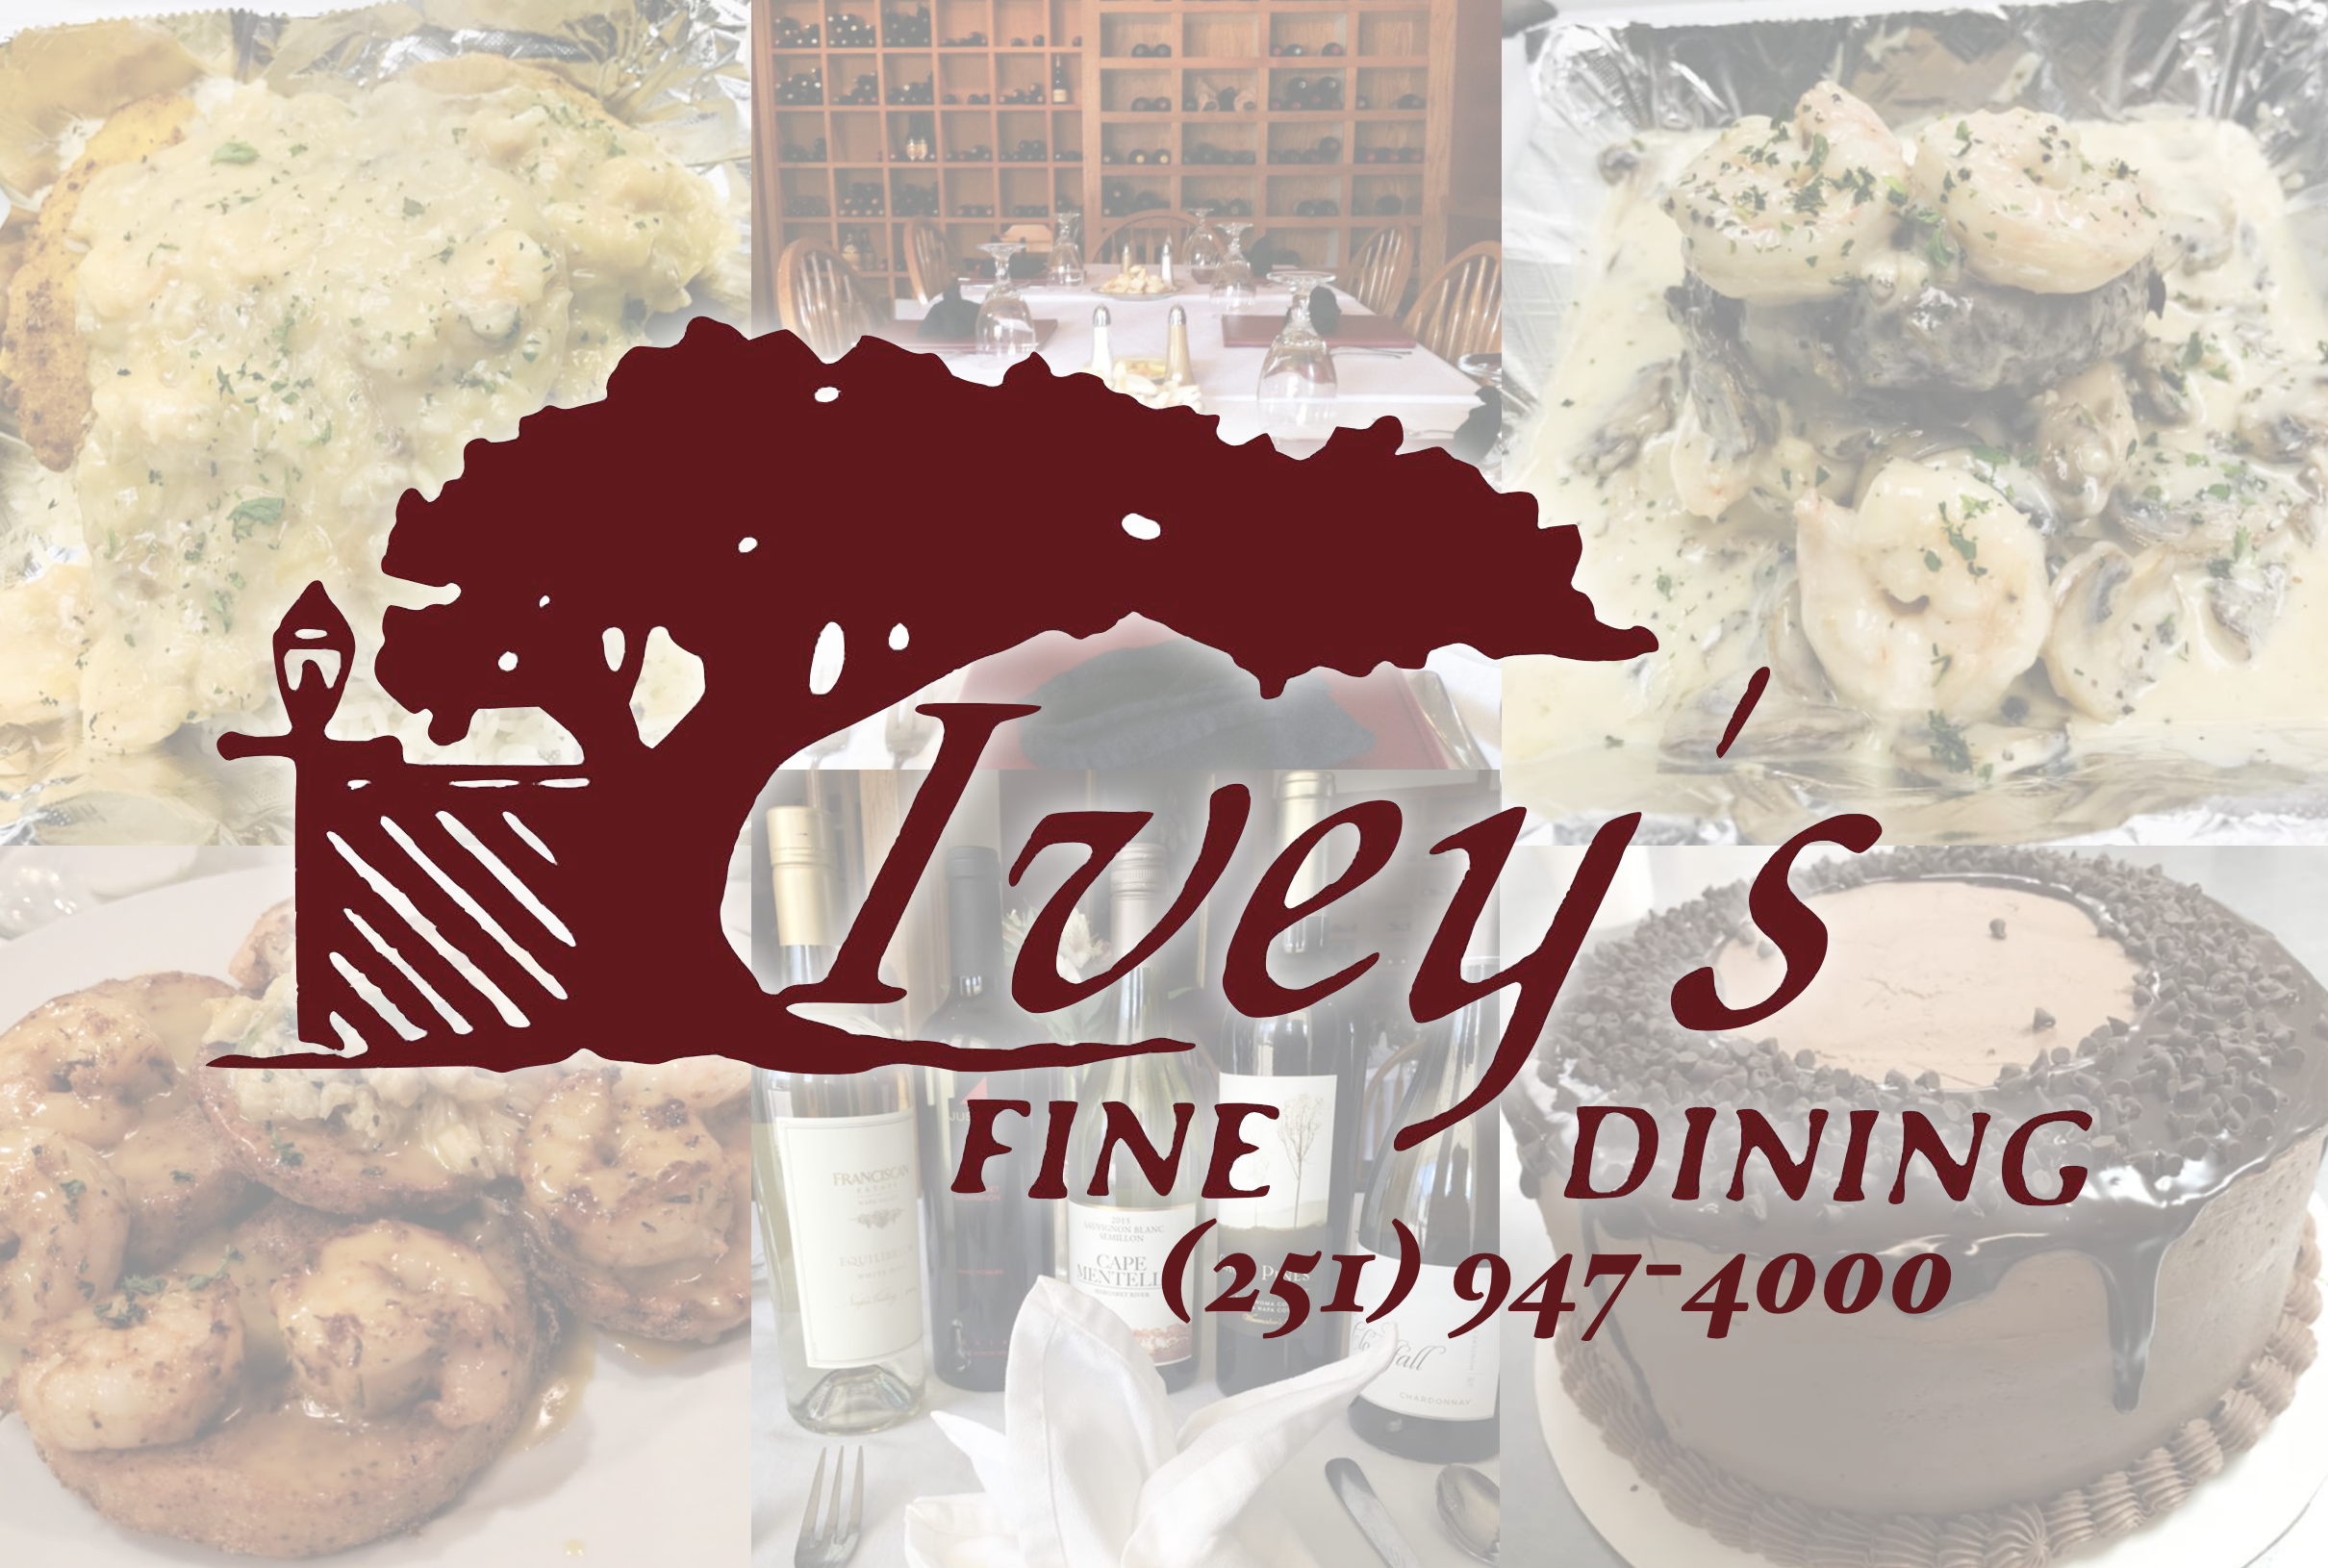 Ivey's Fine Dining - Robertsdale